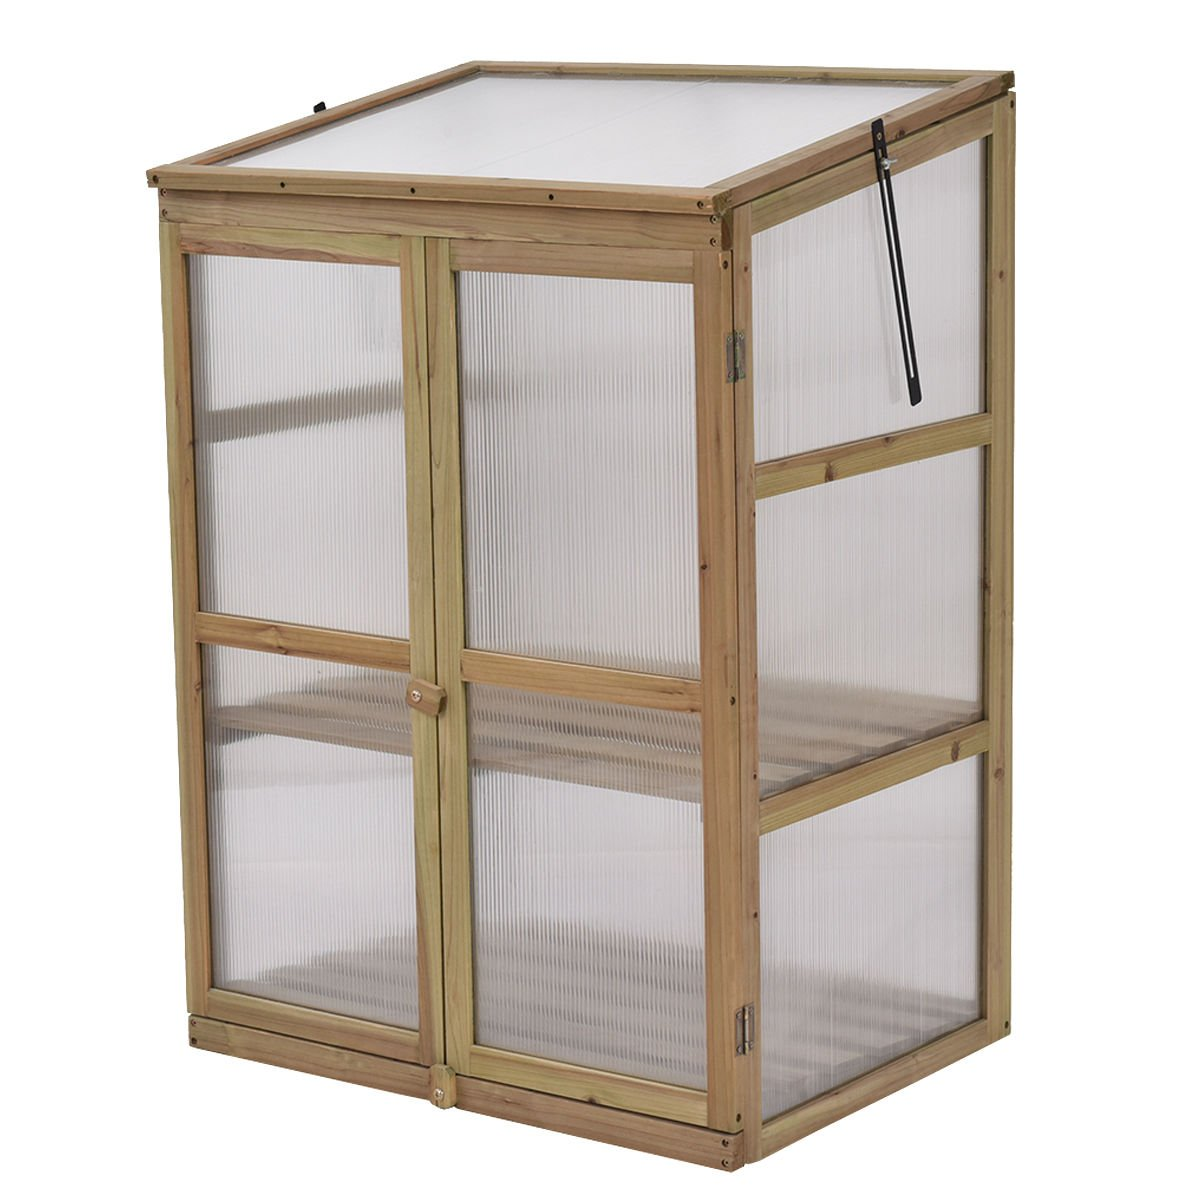 Moon Daughter 2 Doors Double Lock Garden Portable Wooden GreenHouse Cold Frame Raised Plants Shelves Protection